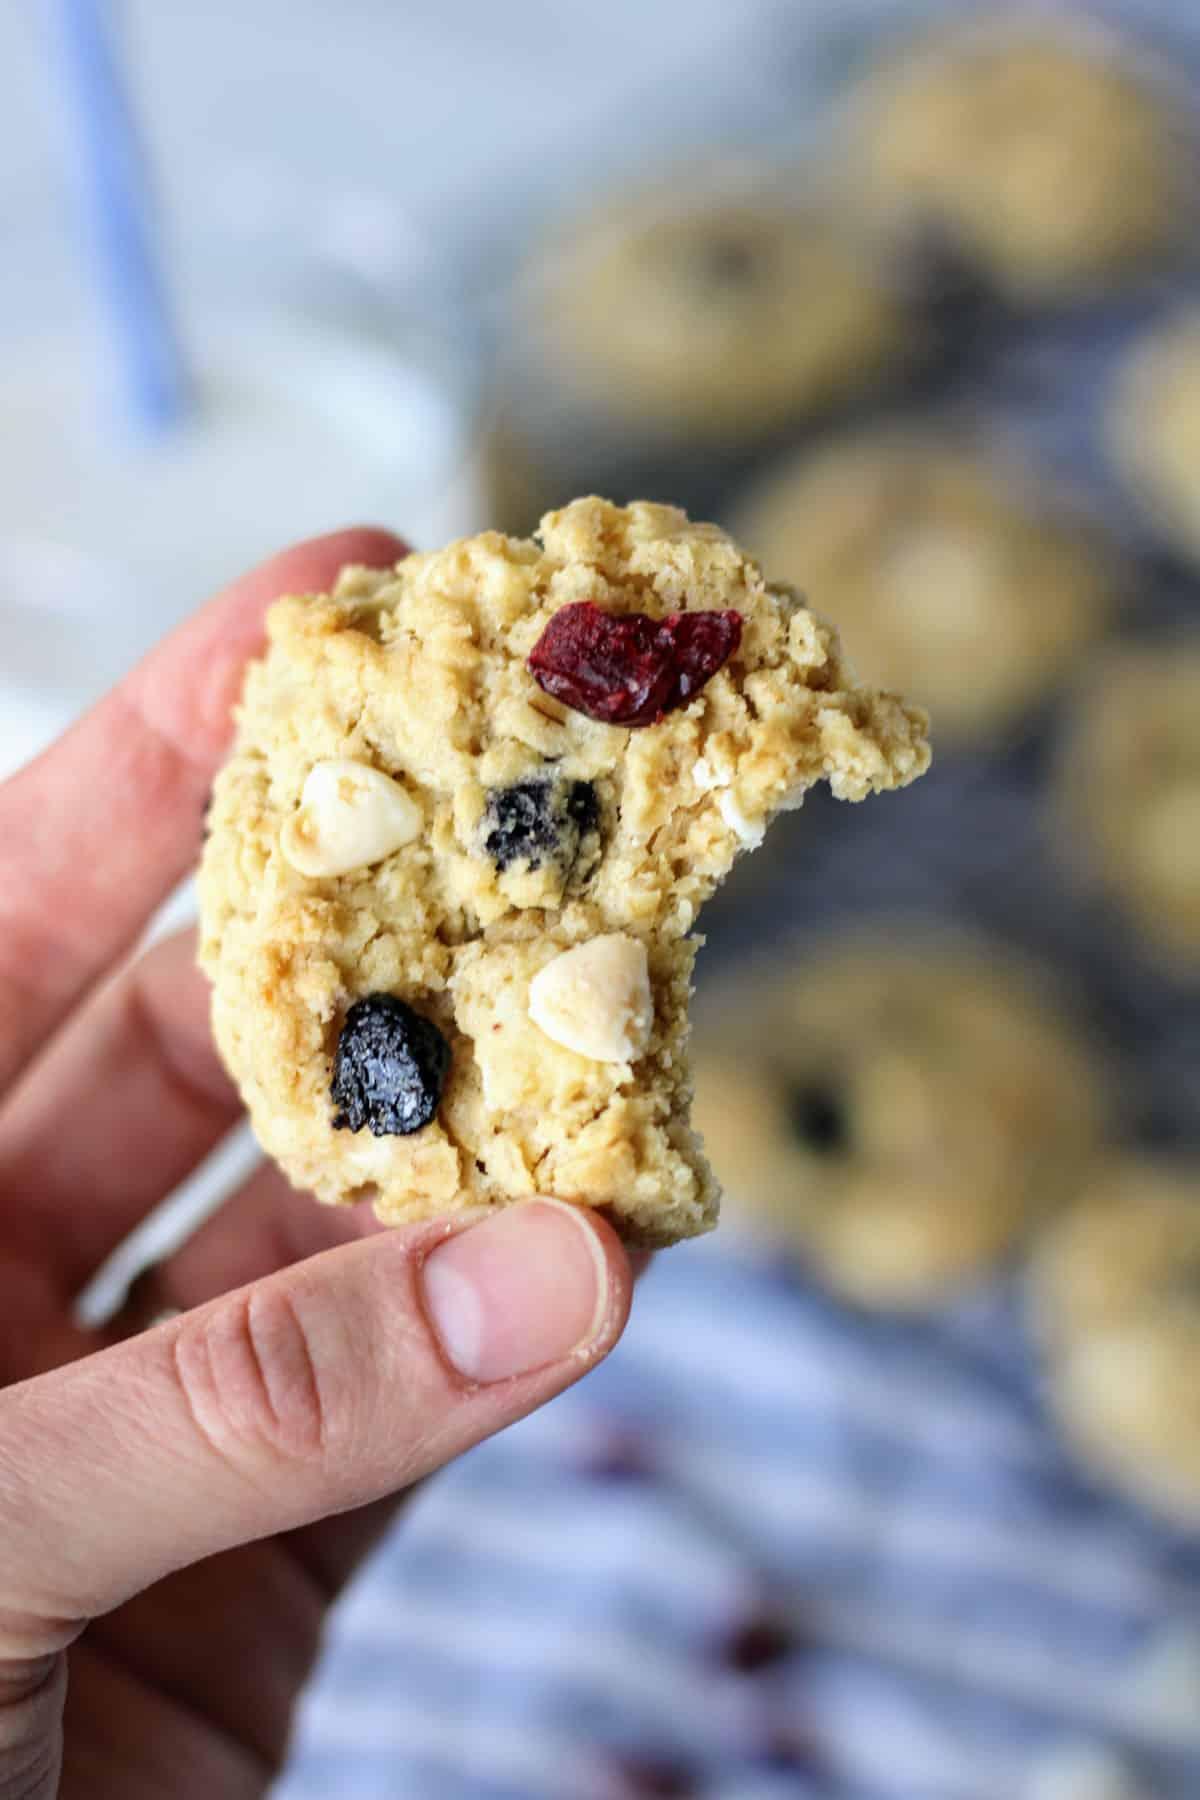 hand holding a red, white and blueberry cookie with a big bite taken out